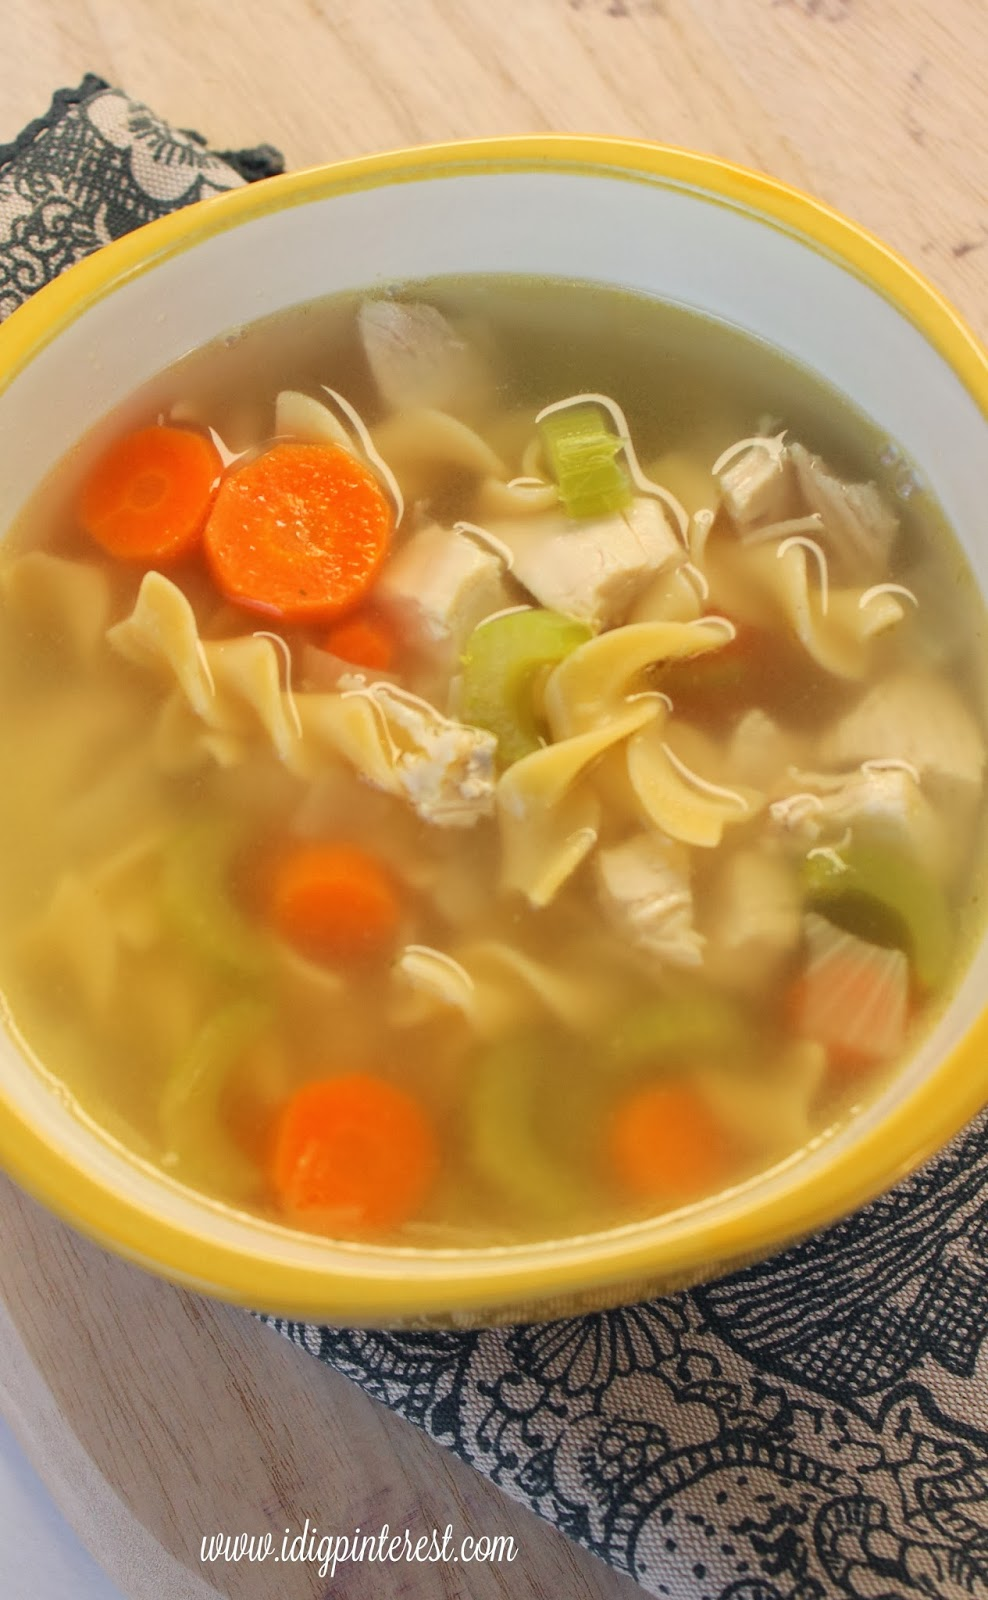 Dig Pinterest: Secret's Out Perfect Chicken Noodle Soup